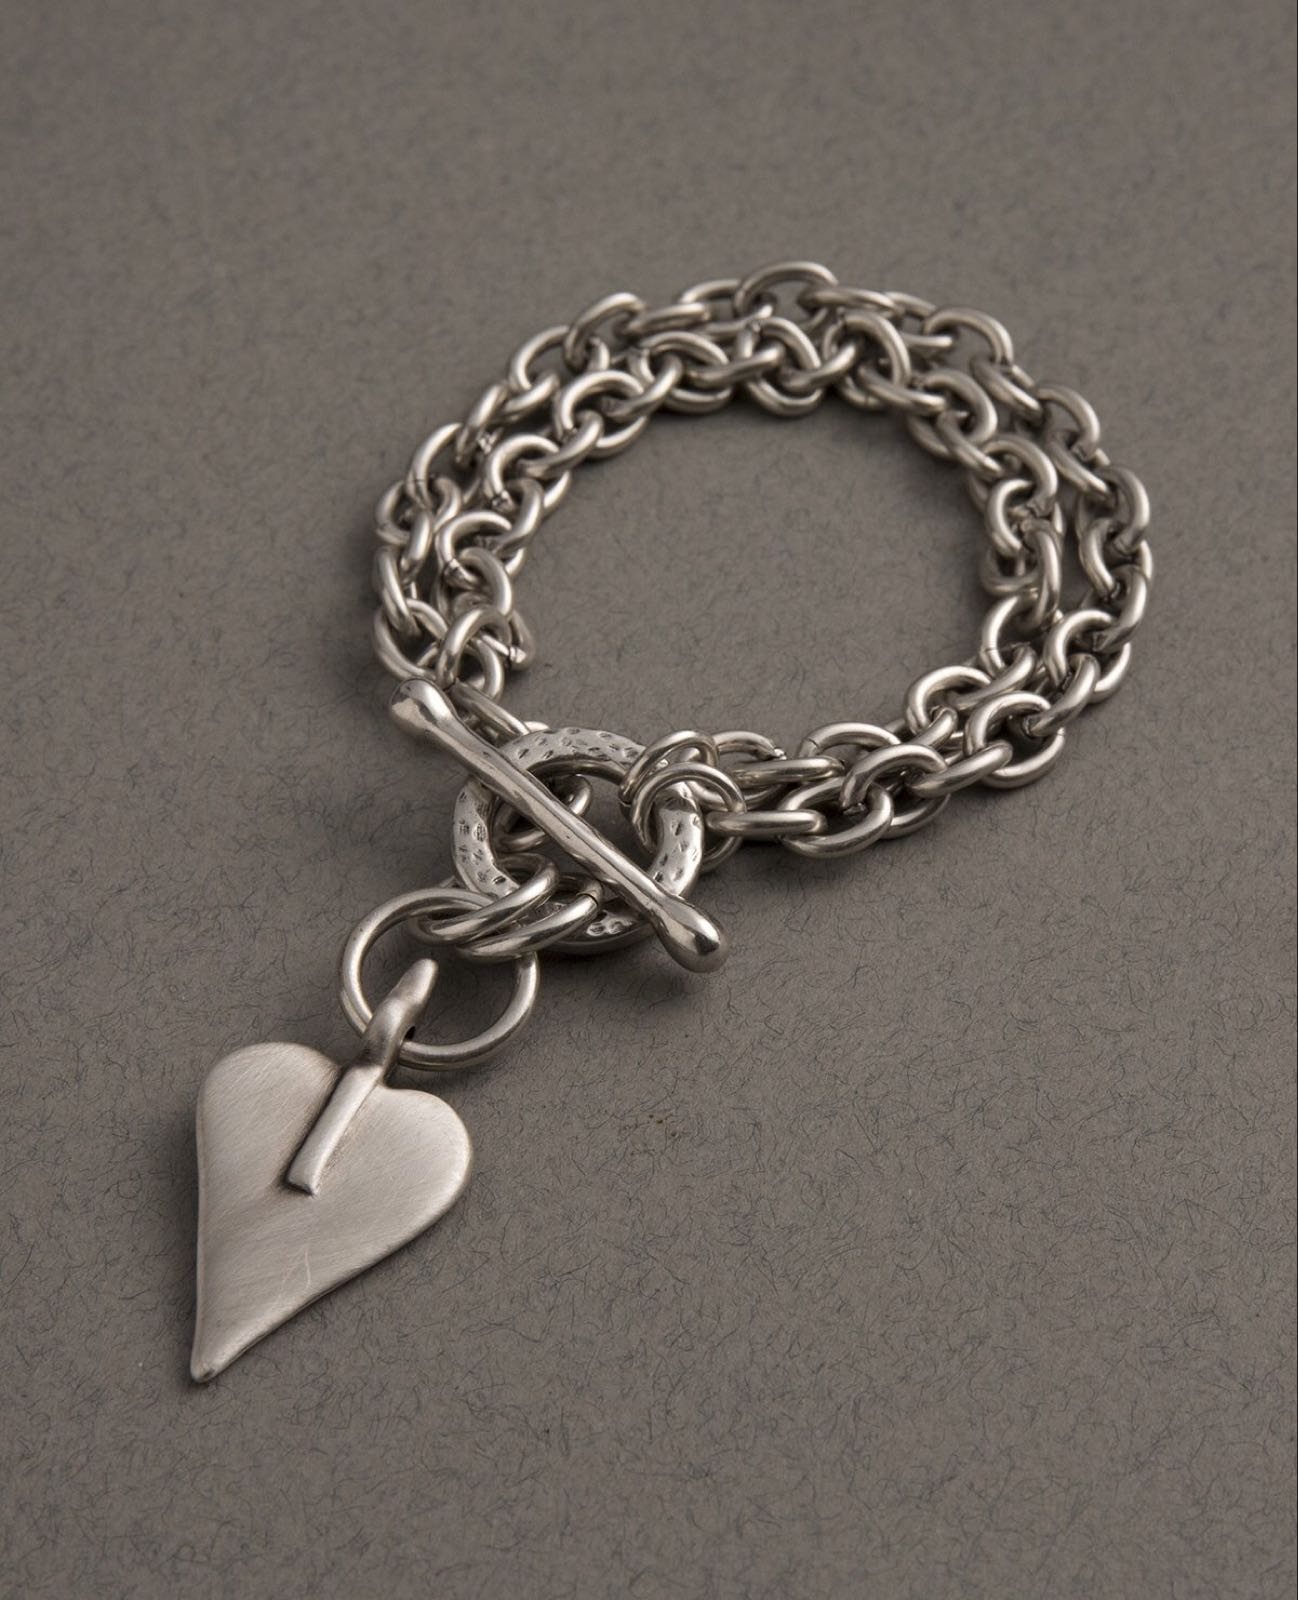 Danon Heart chunky double bracelet was £56